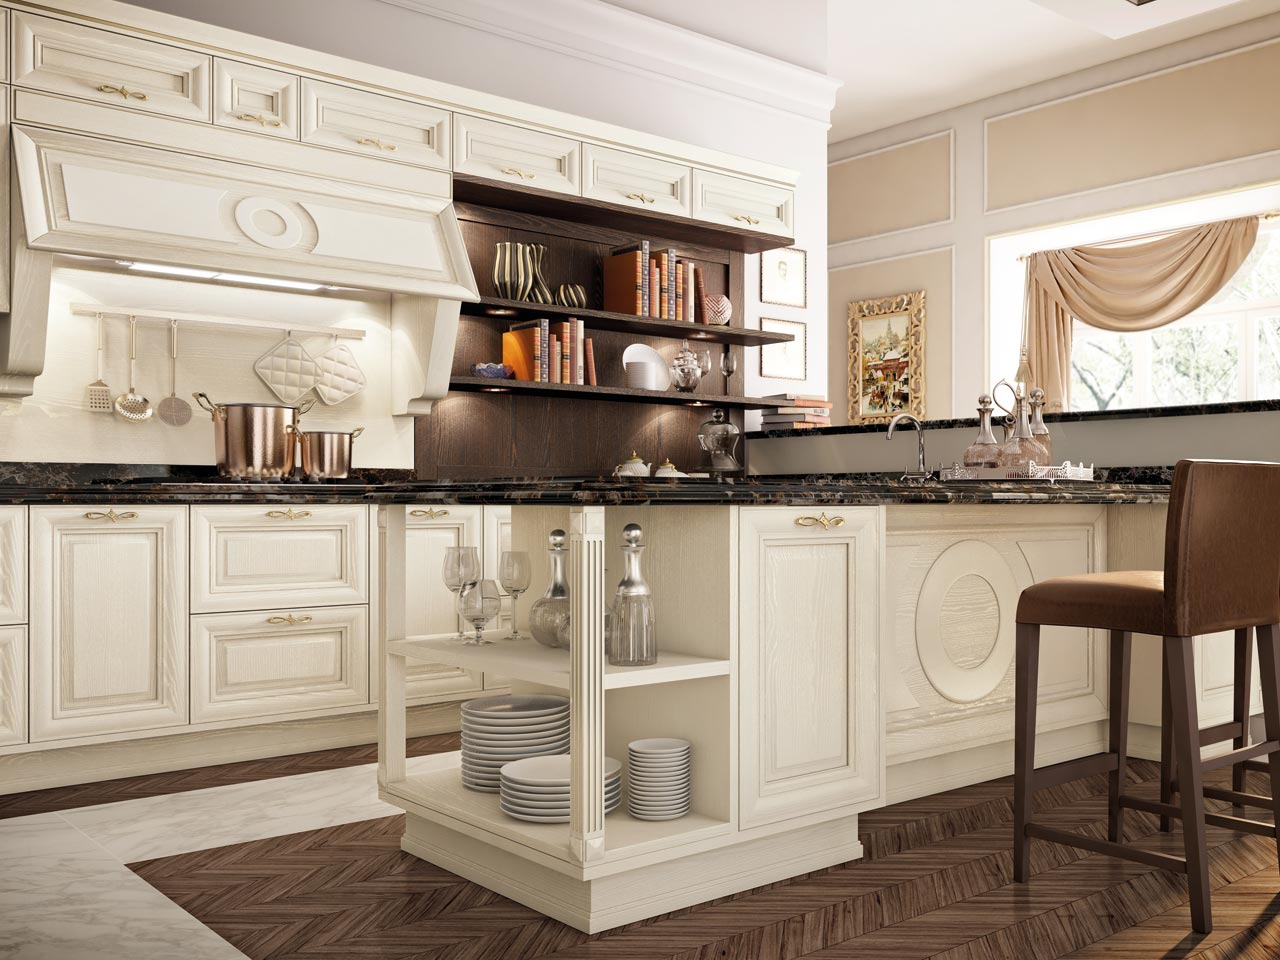 Pantheon kitchen by cucine lube - Cucine lube classiche prezzi ...